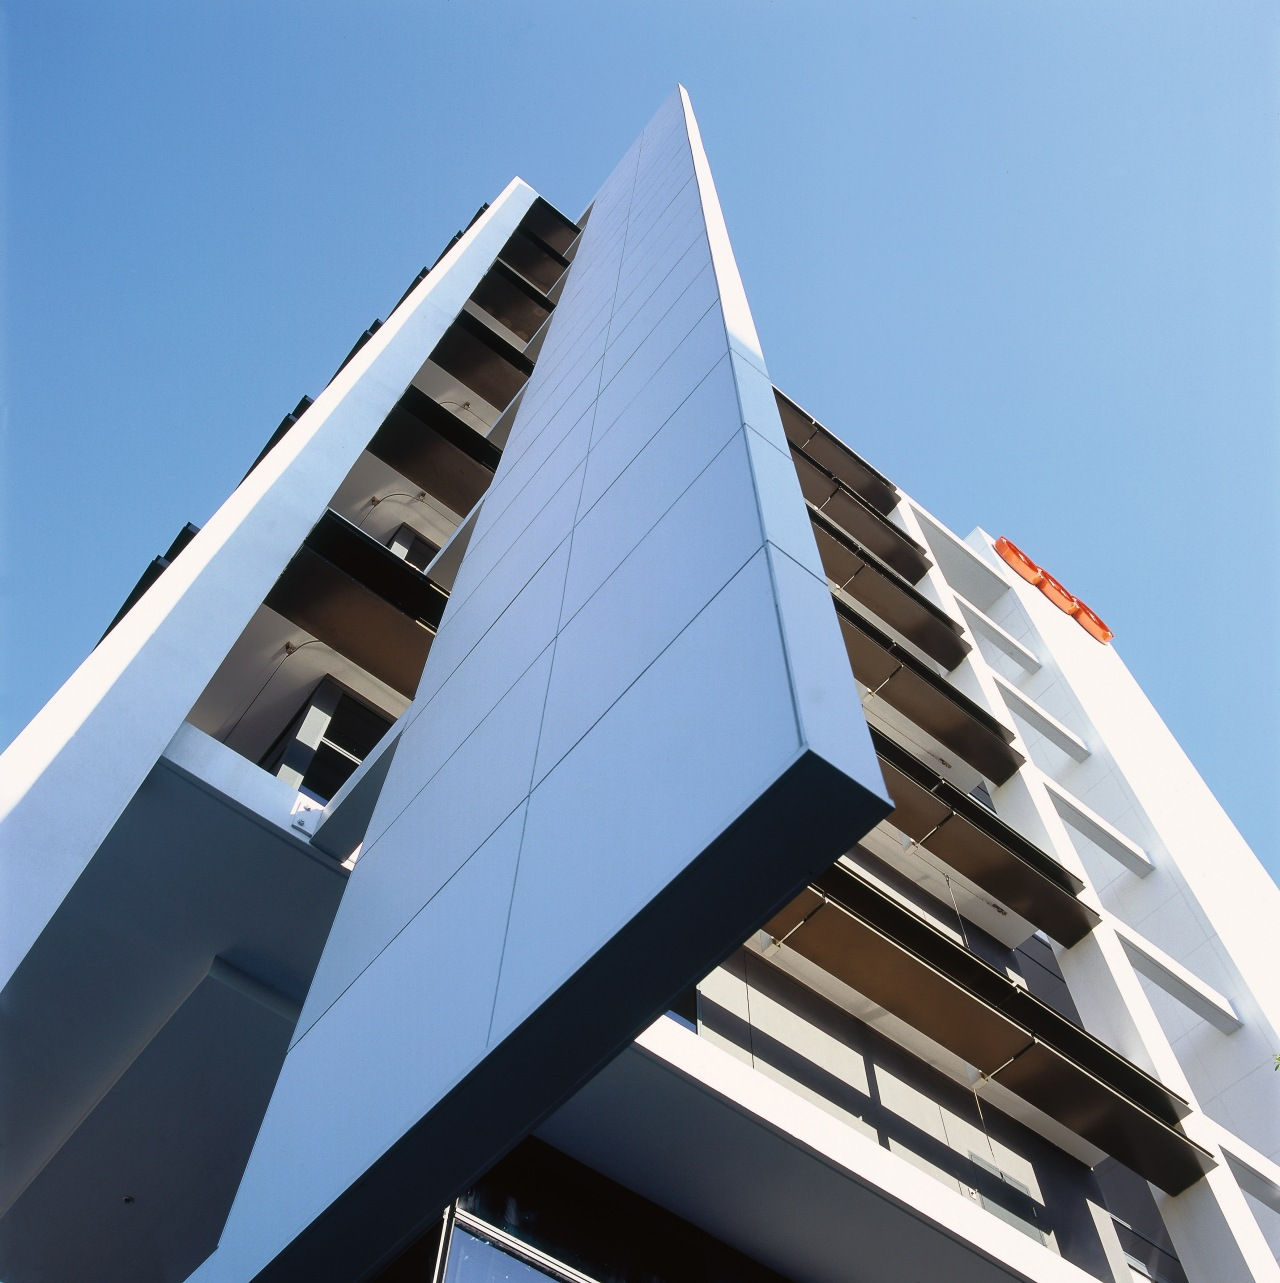 Exterior view of the TNT Australia building from angle, architecture, building, commercial building, condominium, corporate headquarters, daylighting, daytime, facade, line, sky, structure, teal, black